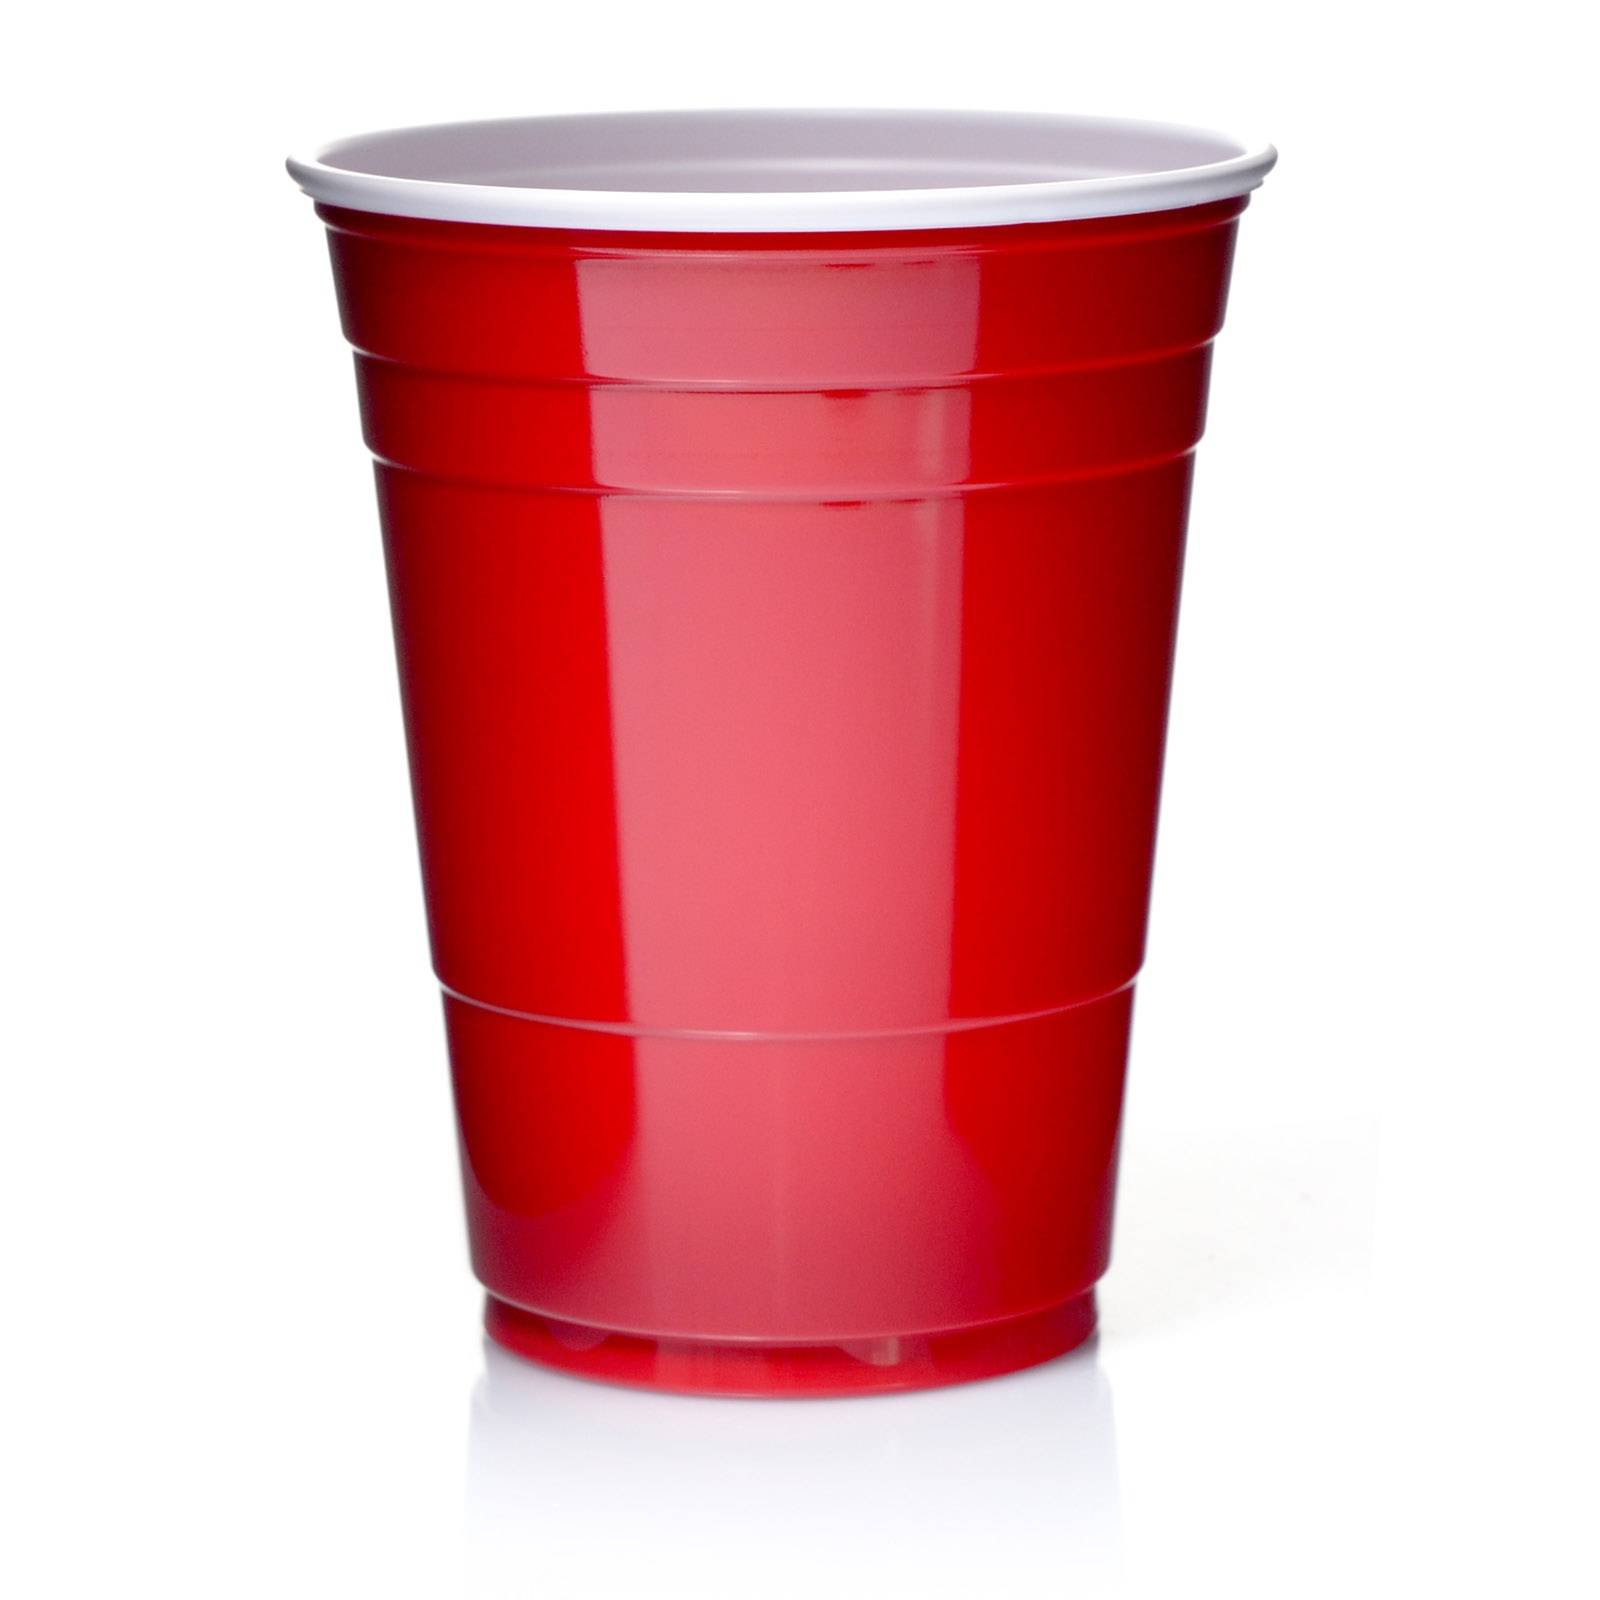 Rote Plastikbecher Solo Cups 16oz Rote Becher 473 Ml Red Cup Original Usa 100